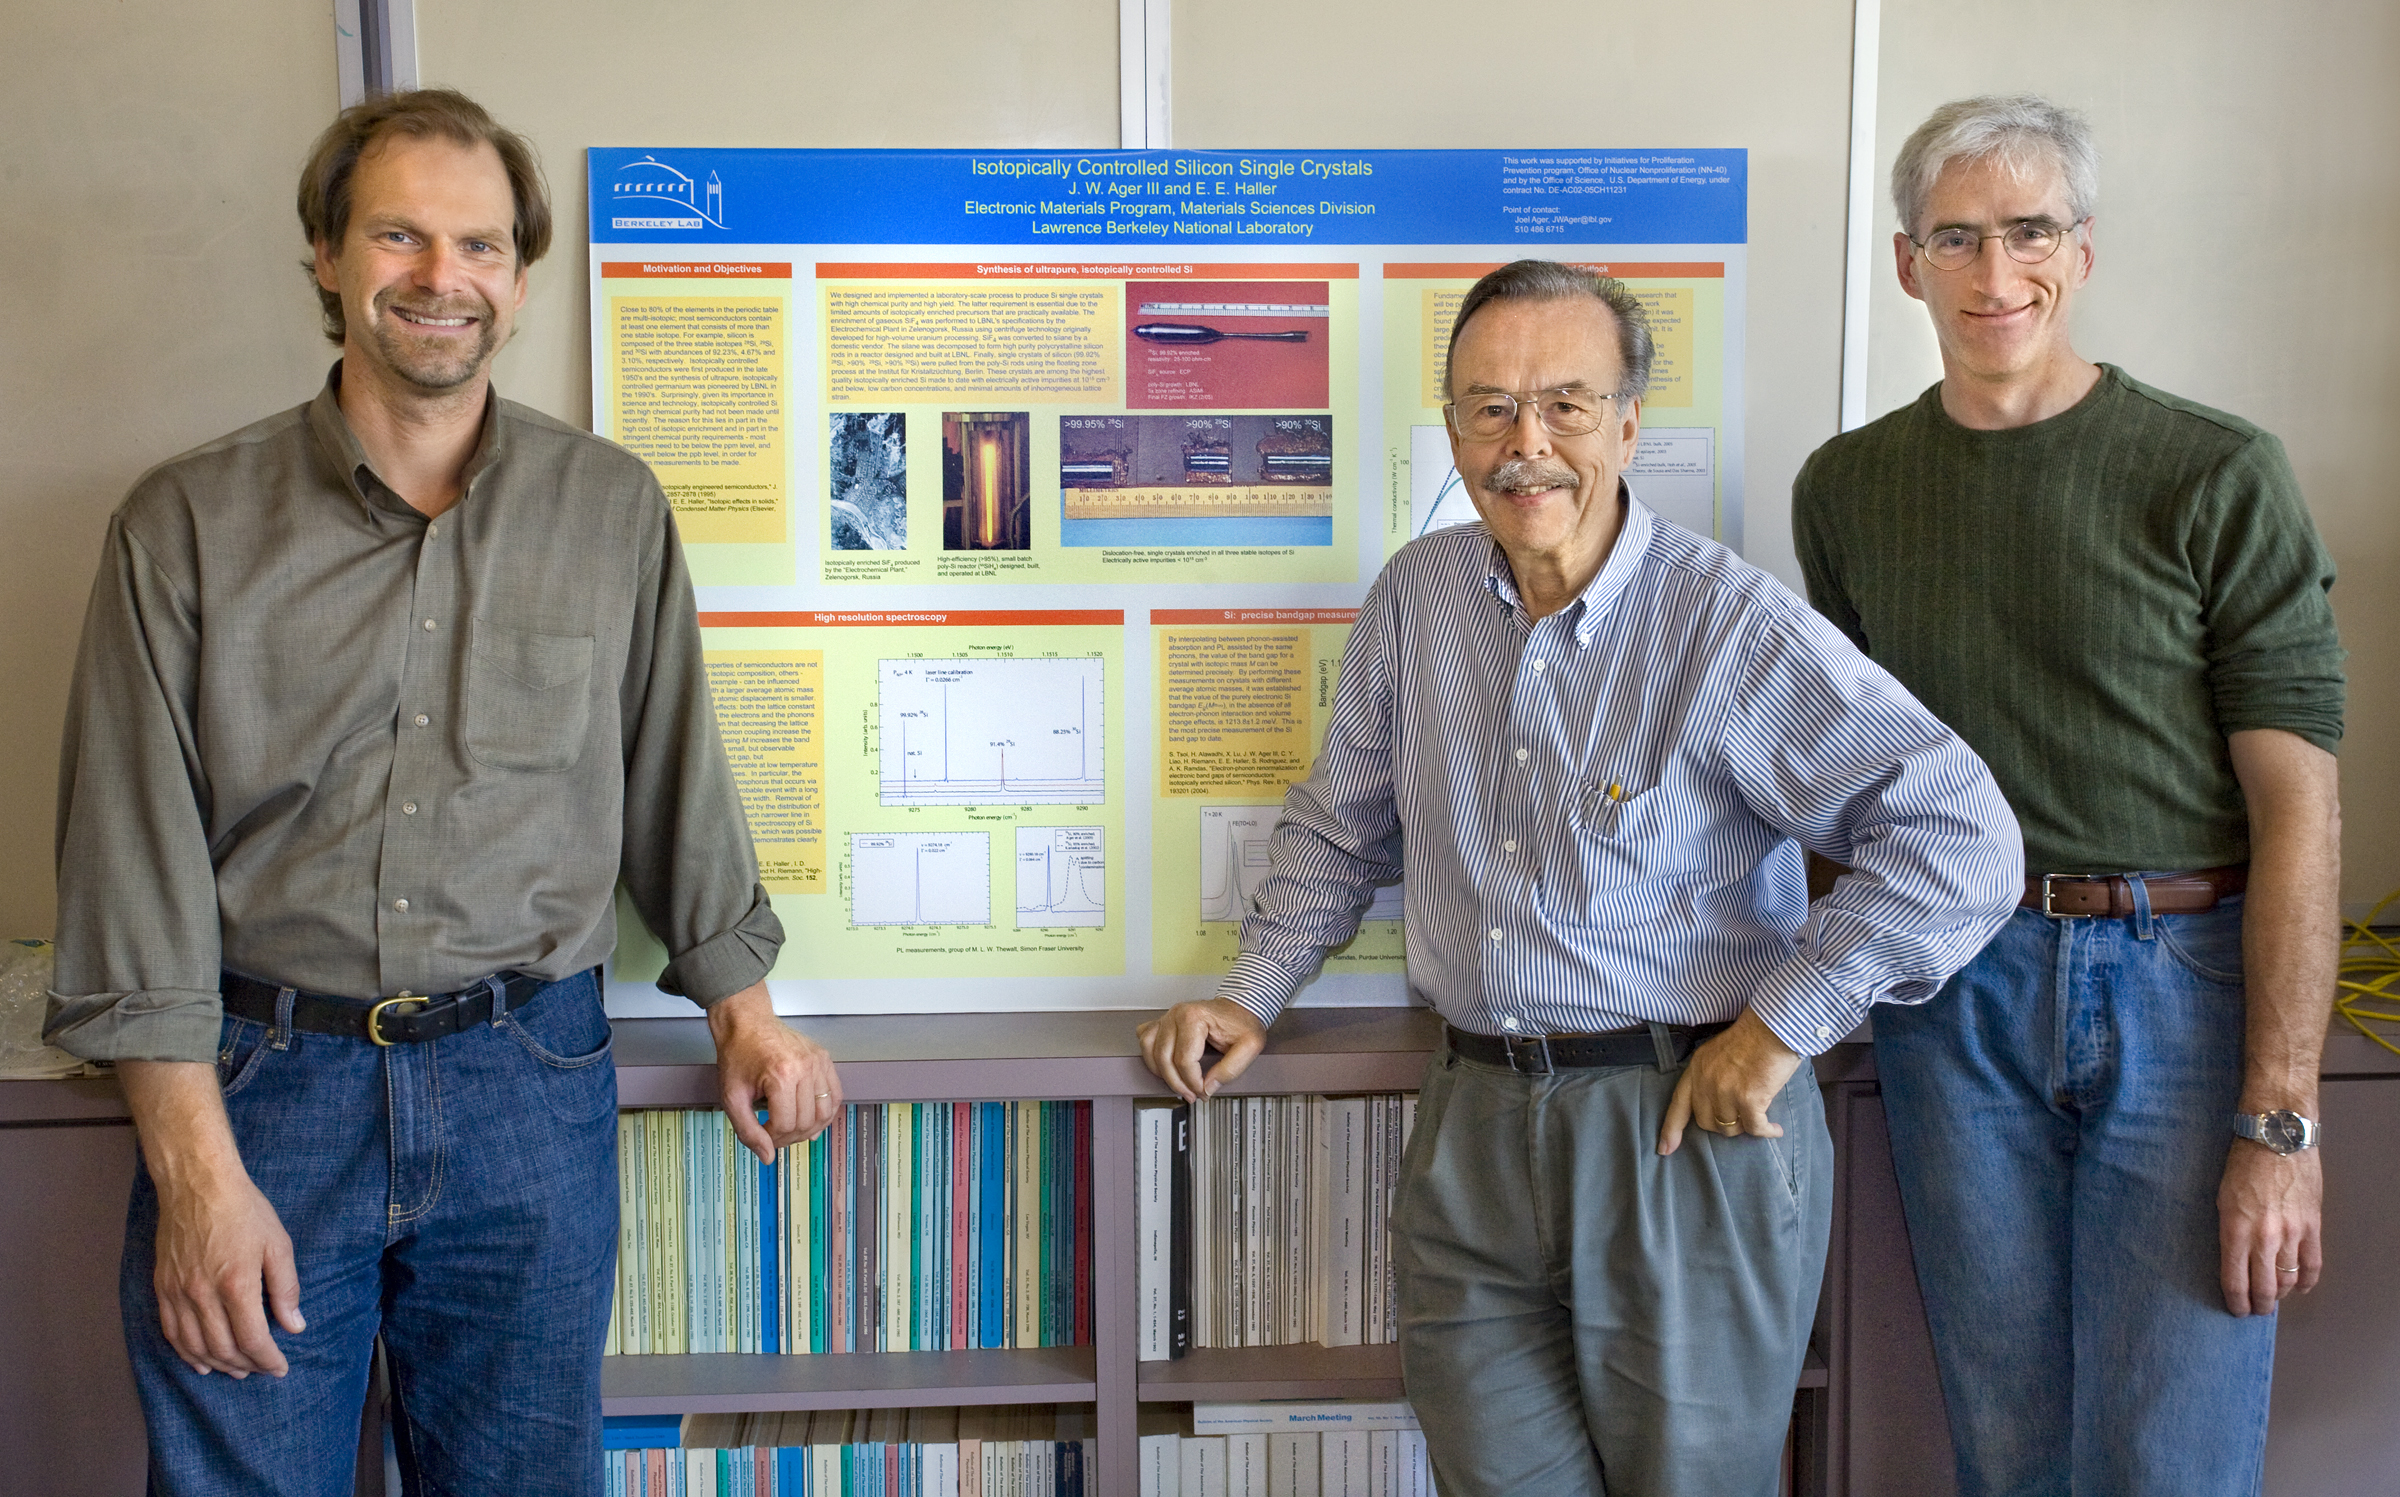 Berkeley Lab's Thomas Schenkel (left), Eugene Haller and Joel Ager were part of an international collaboration that demonstrated how atomic nuclei can function as solid state quantum memory. (Photo by Roy Kaltschmidt, Berkeley Lab Public Affairs)